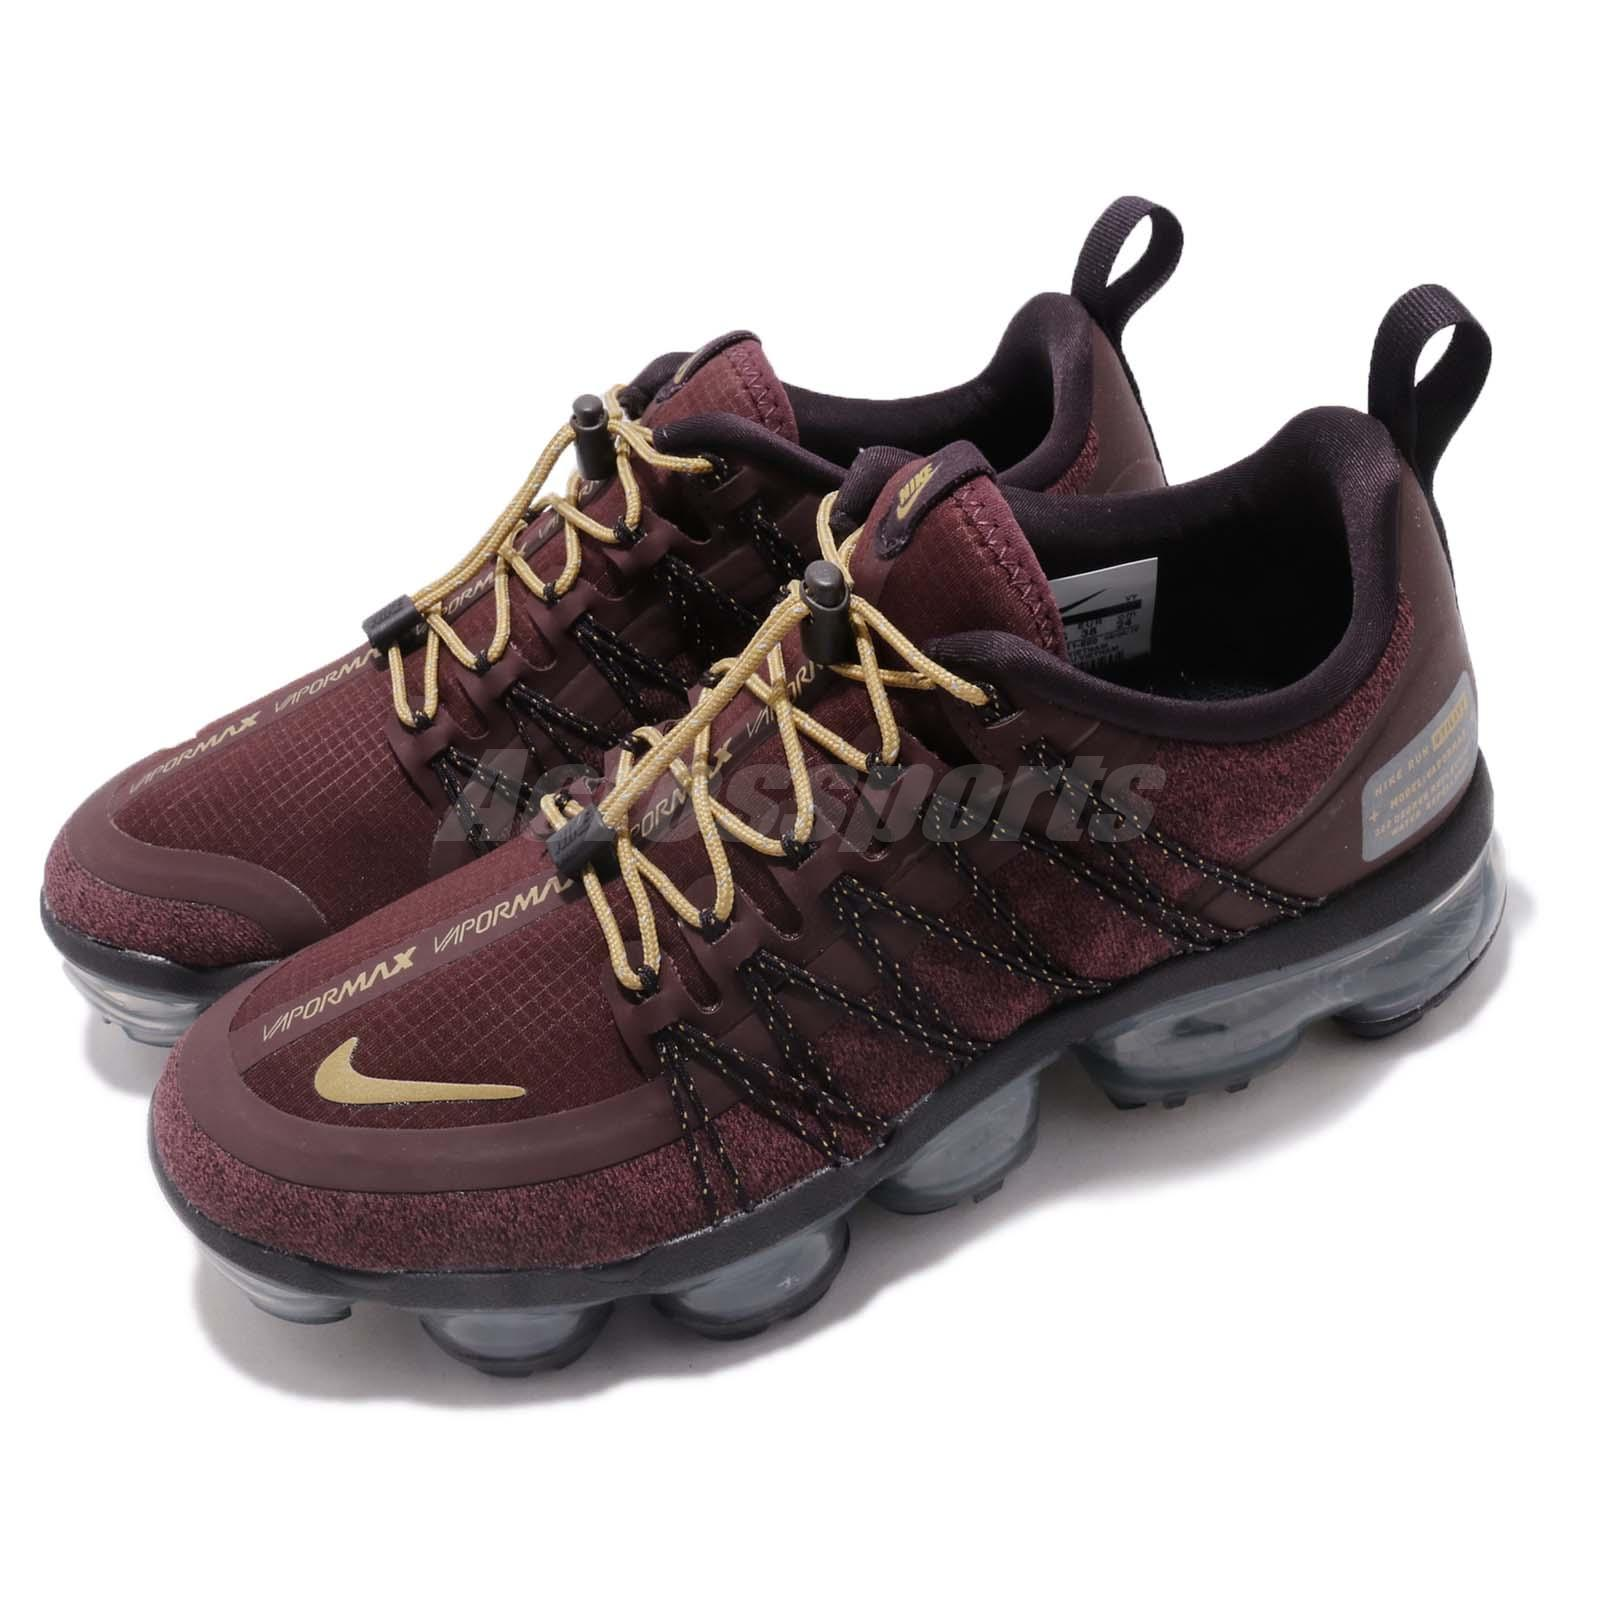 reputable site 9f29e 34b53 Details about Nike Wmns Air Vapormax Run Utility Burgundy Gold Women  Running Shoes AQ8811-600